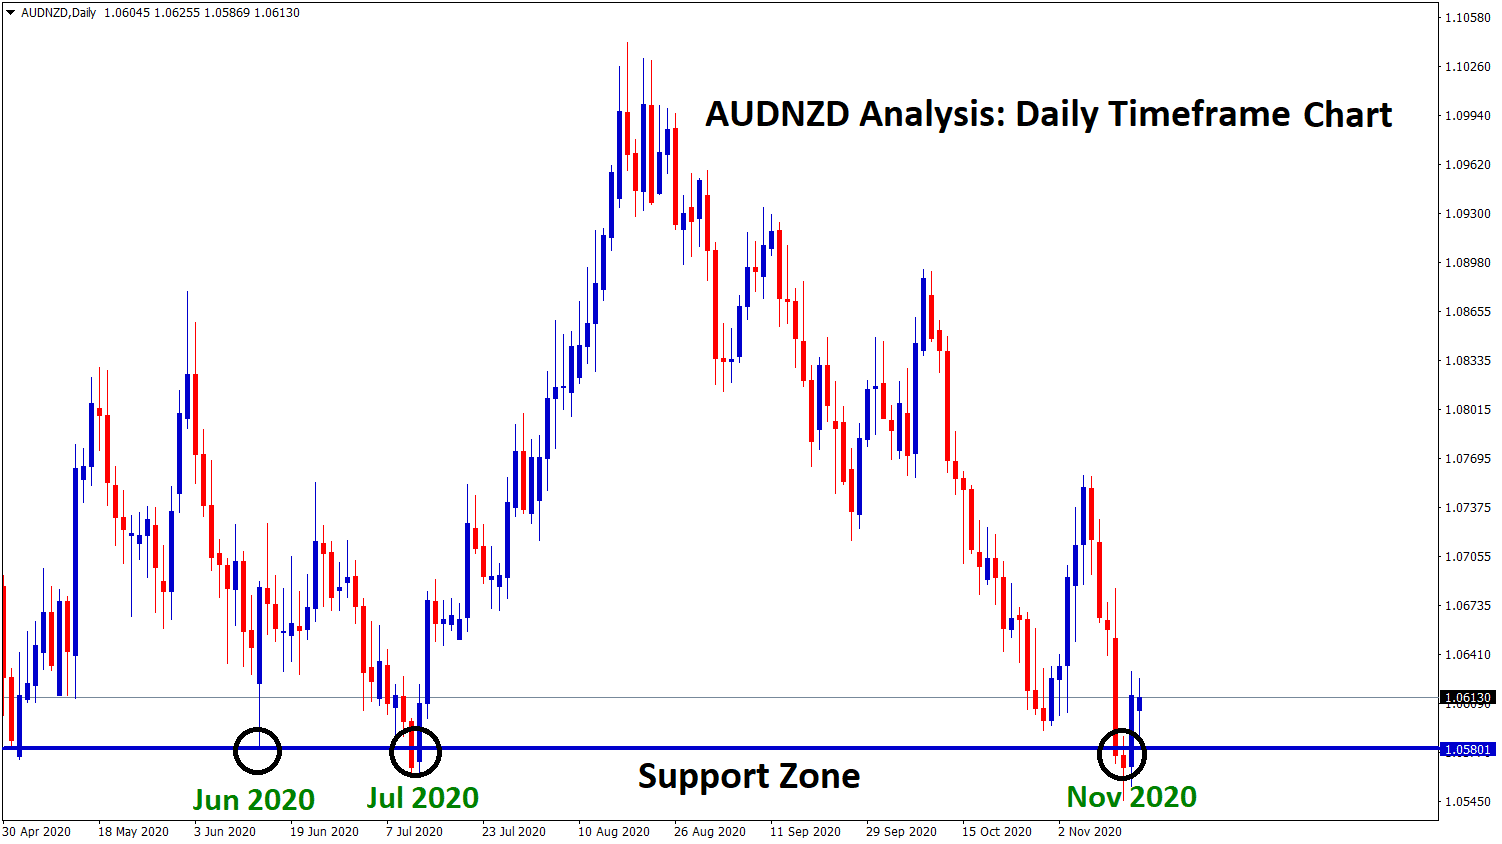 AUDNZD bouncing back from the support zone in daily chart